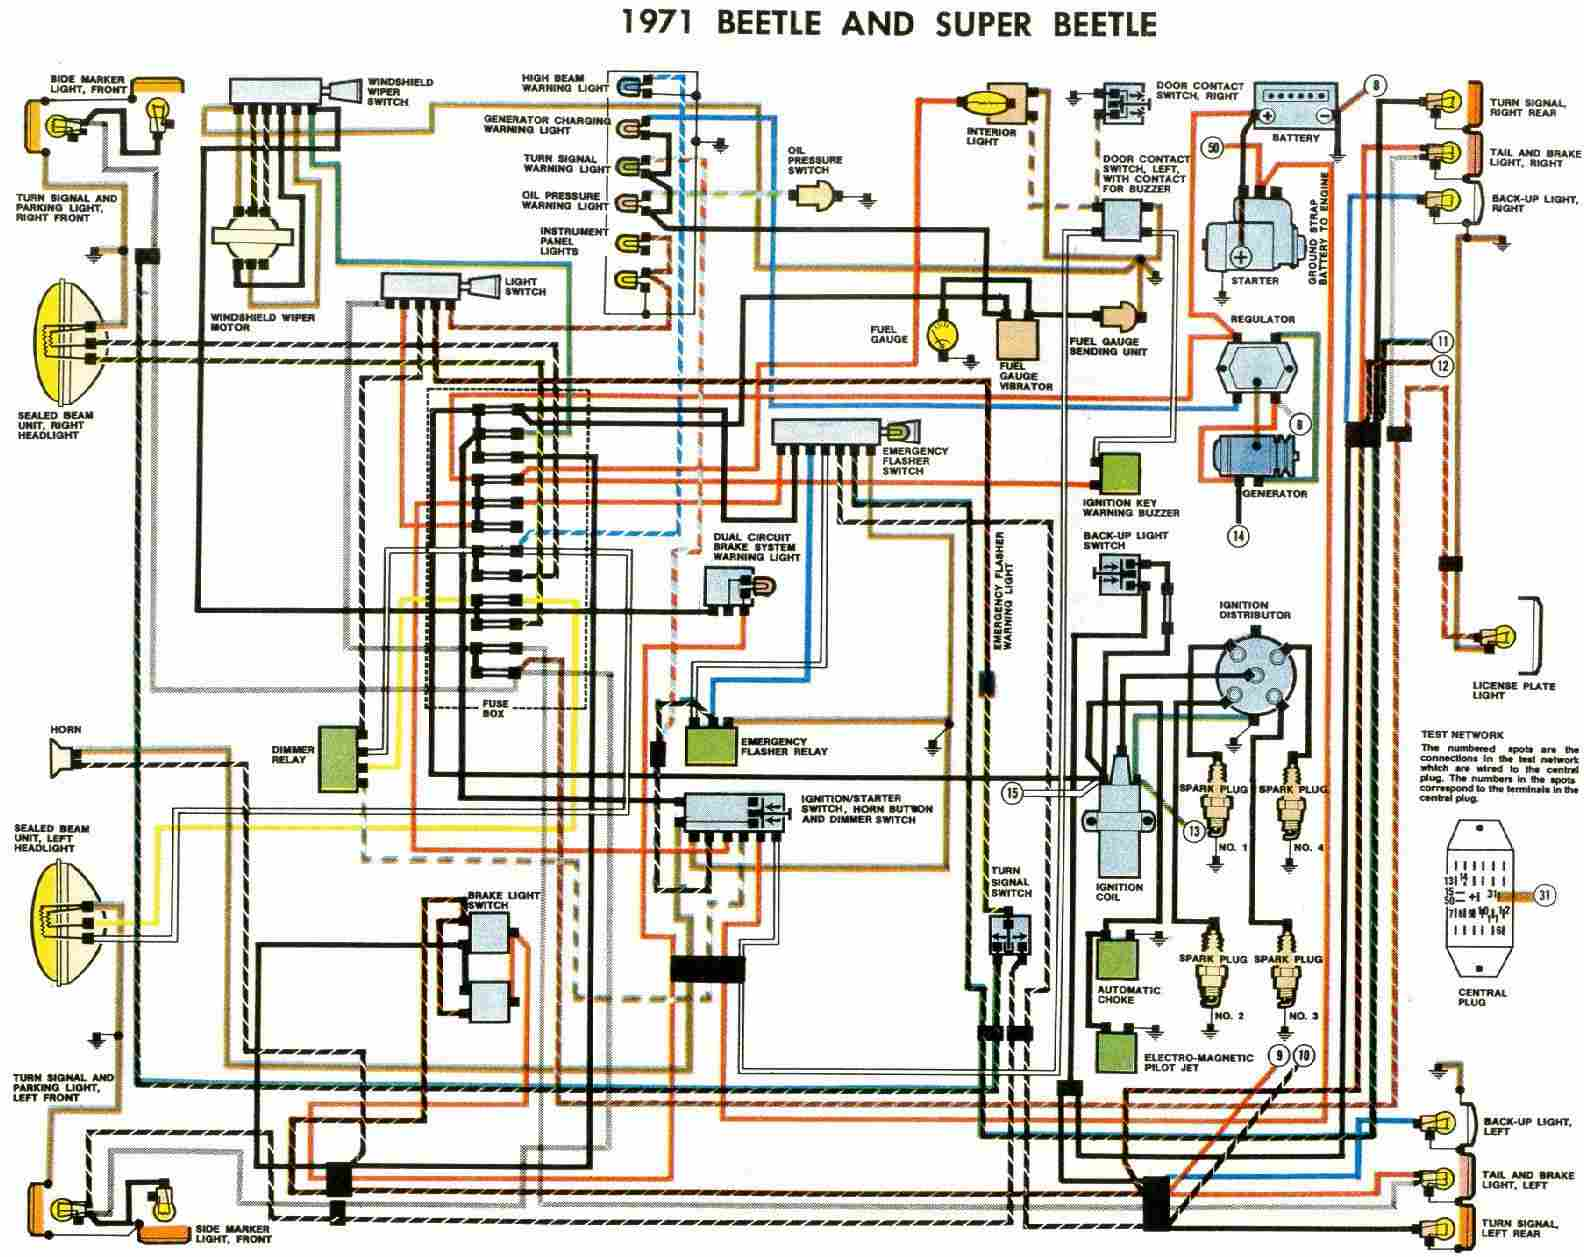 vw beetle and super beetle 1971 electrical wiring diagram skoda fabia power steering wiring diagram skoda [ 1584 x 1257 Pixel ]